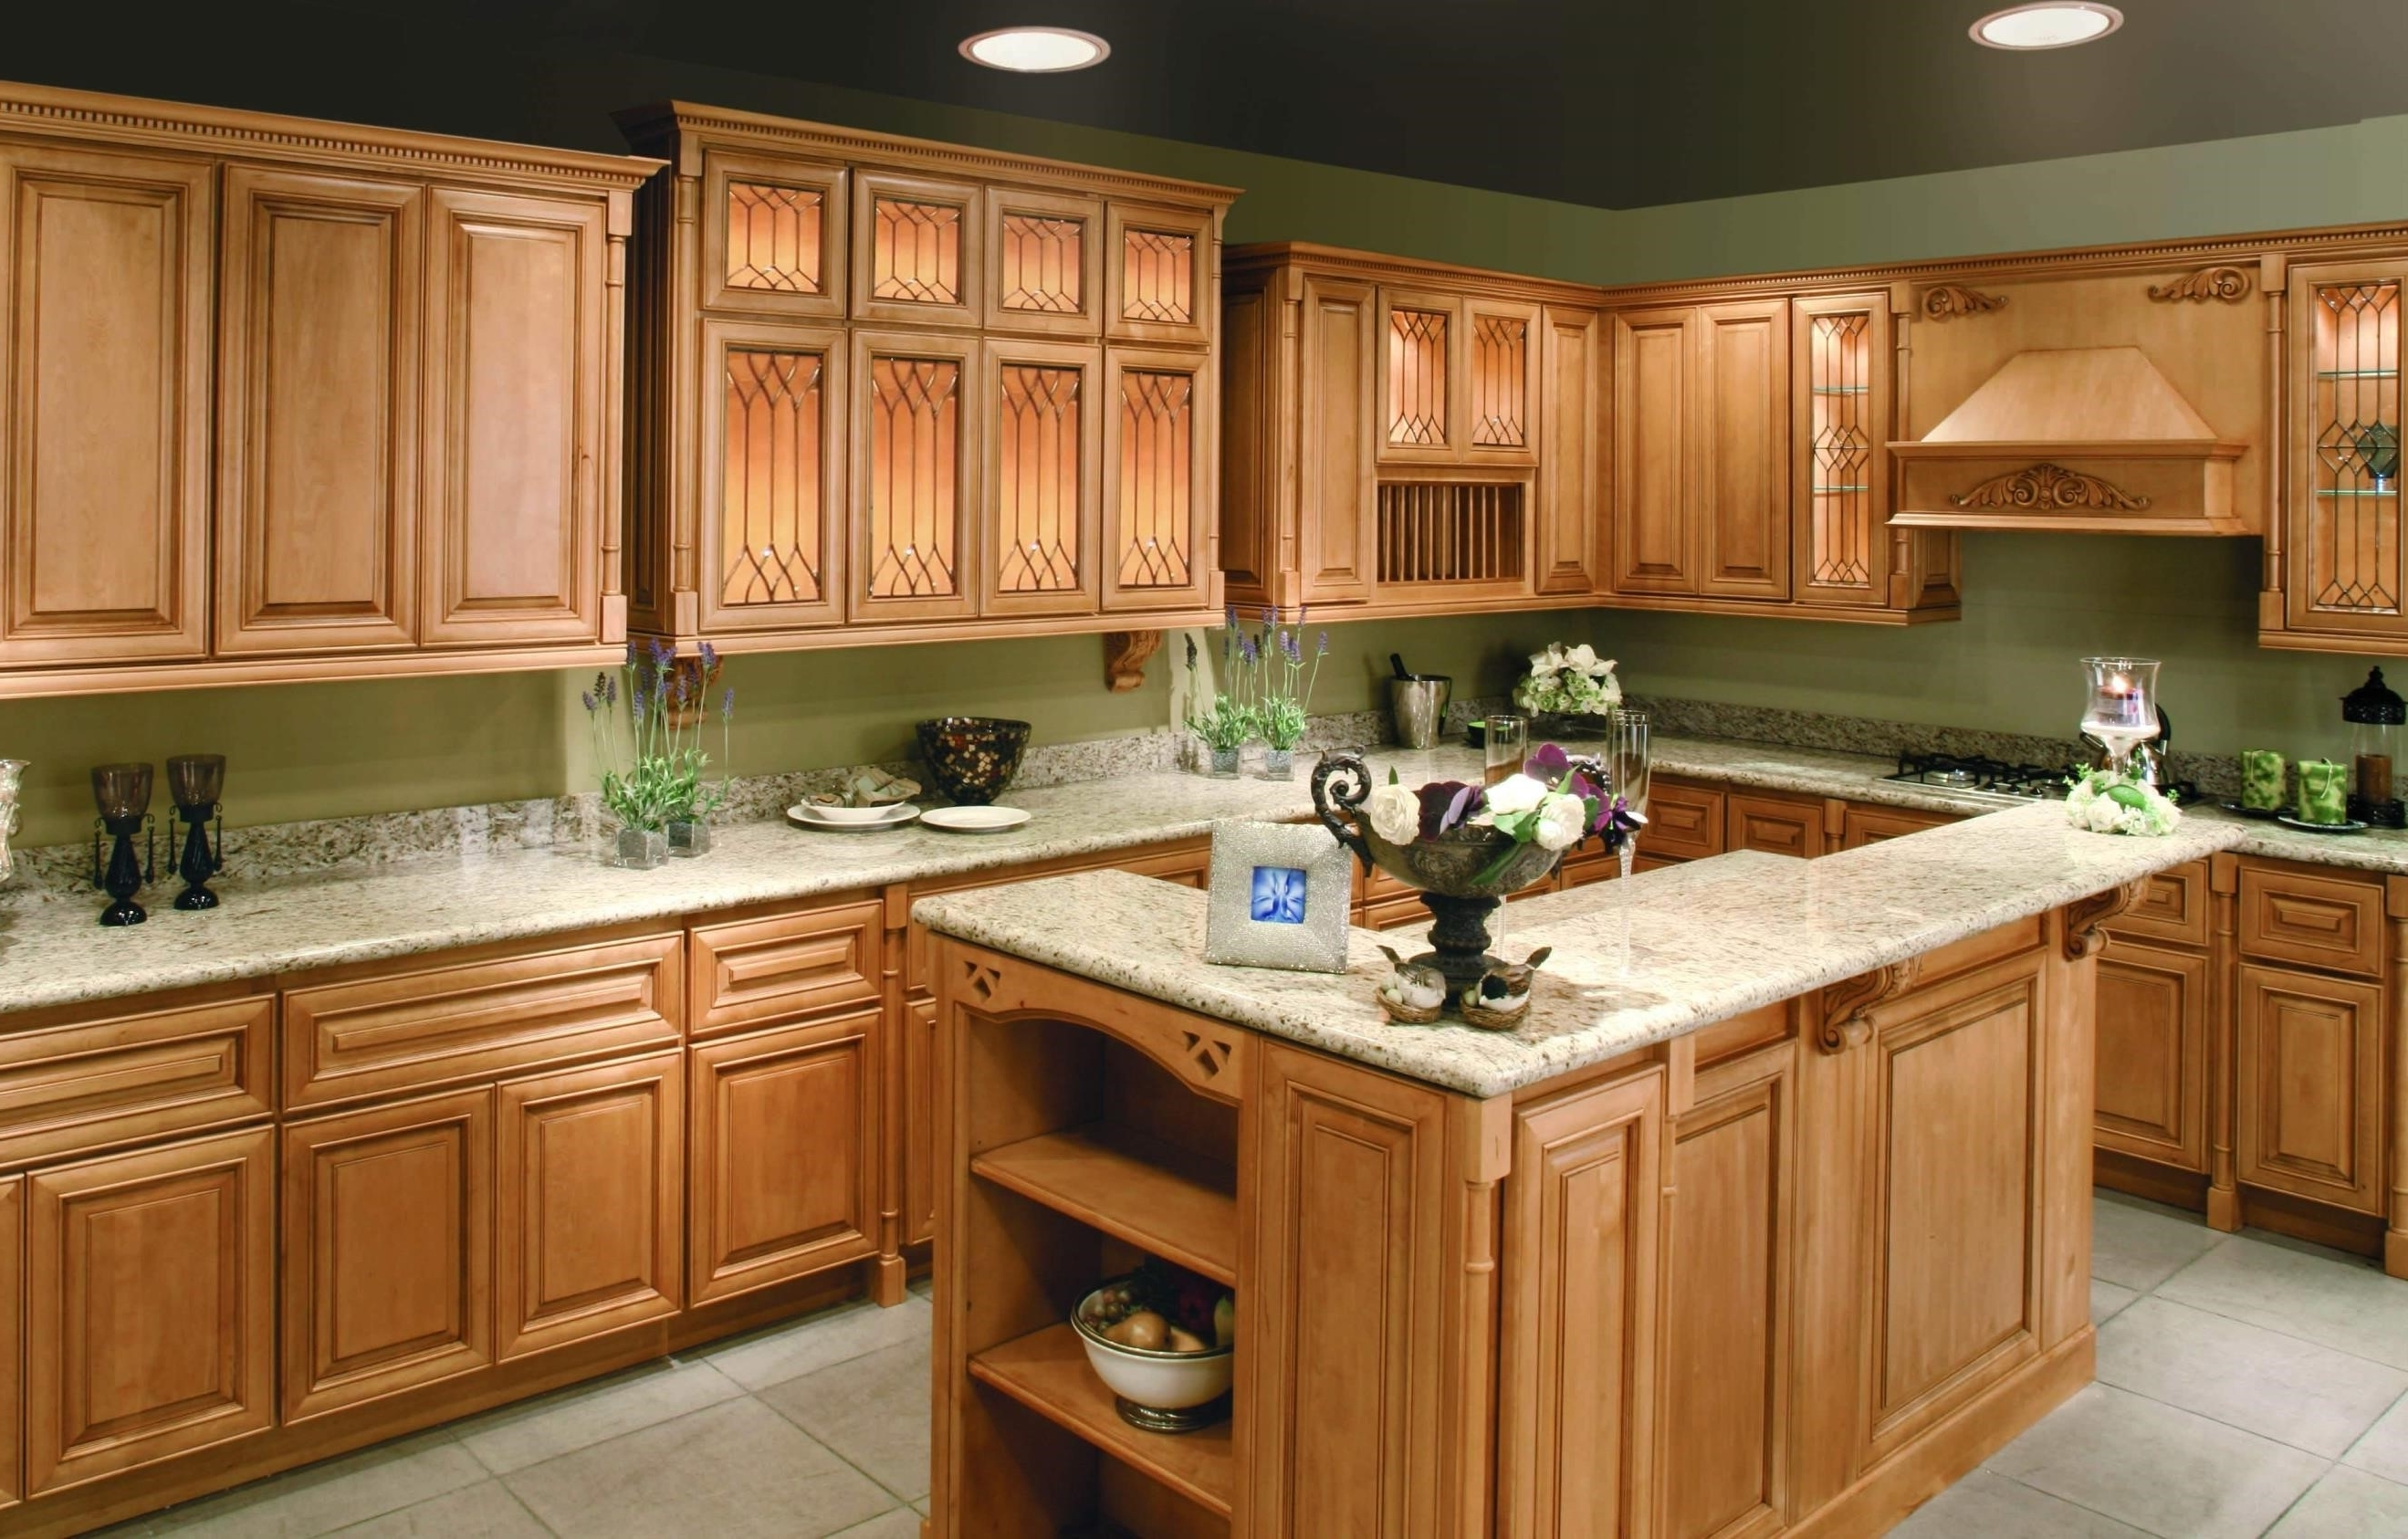 Bathroom Wall Color With Oak Cabinets